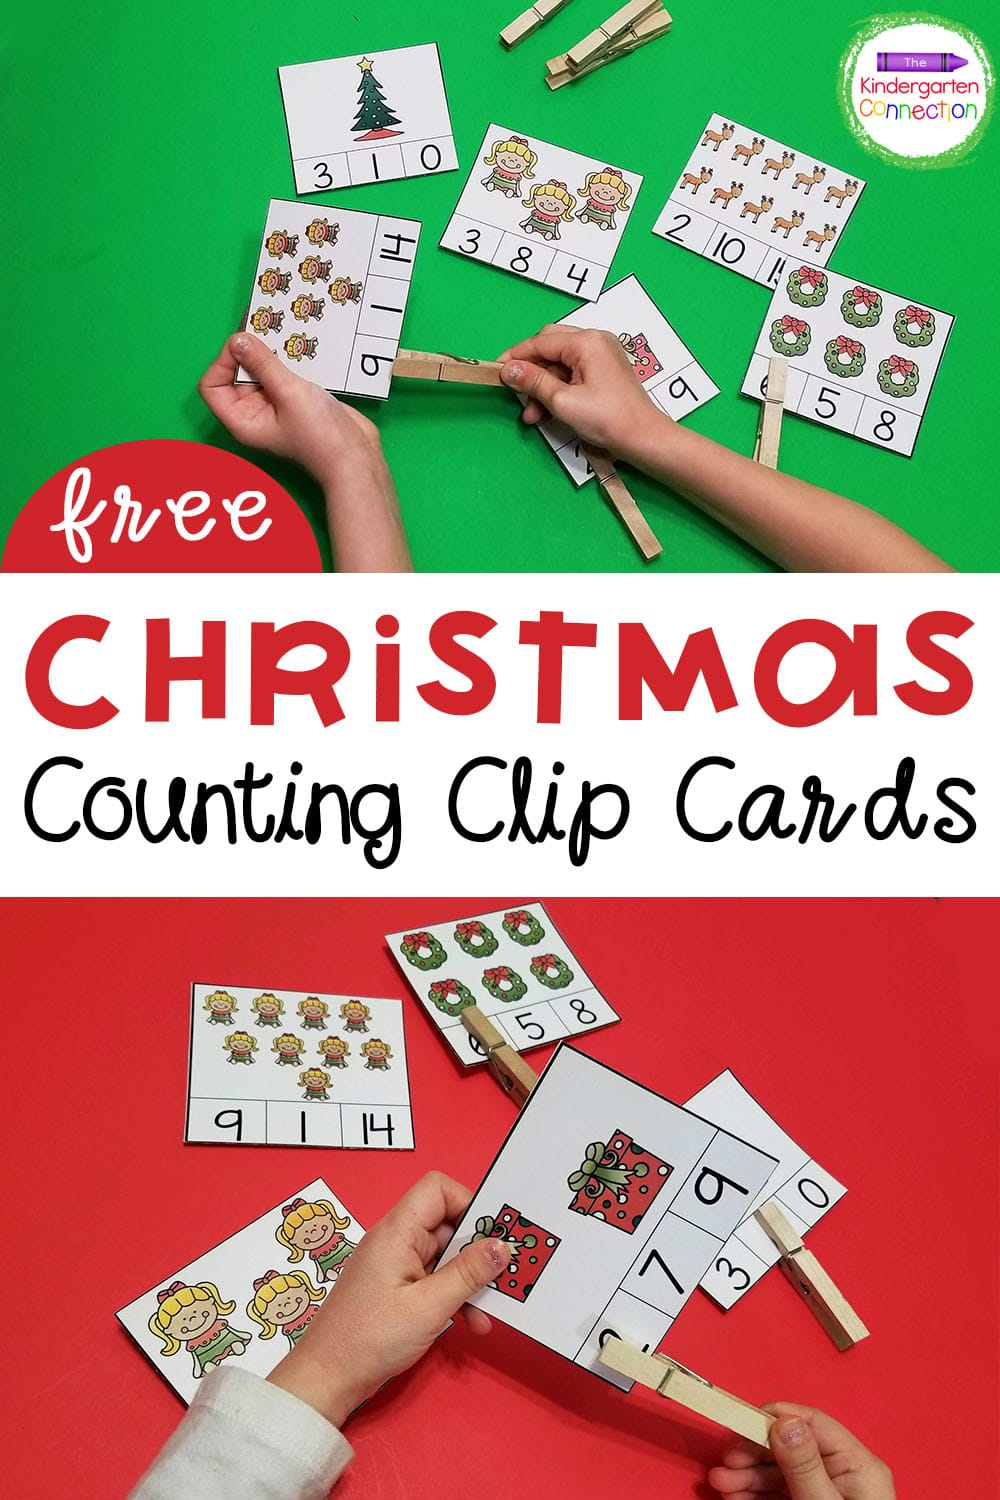 These free Christmas counting clip cards for Kindergarten are super versatile! They're great for practicing fine motor skills and counting!